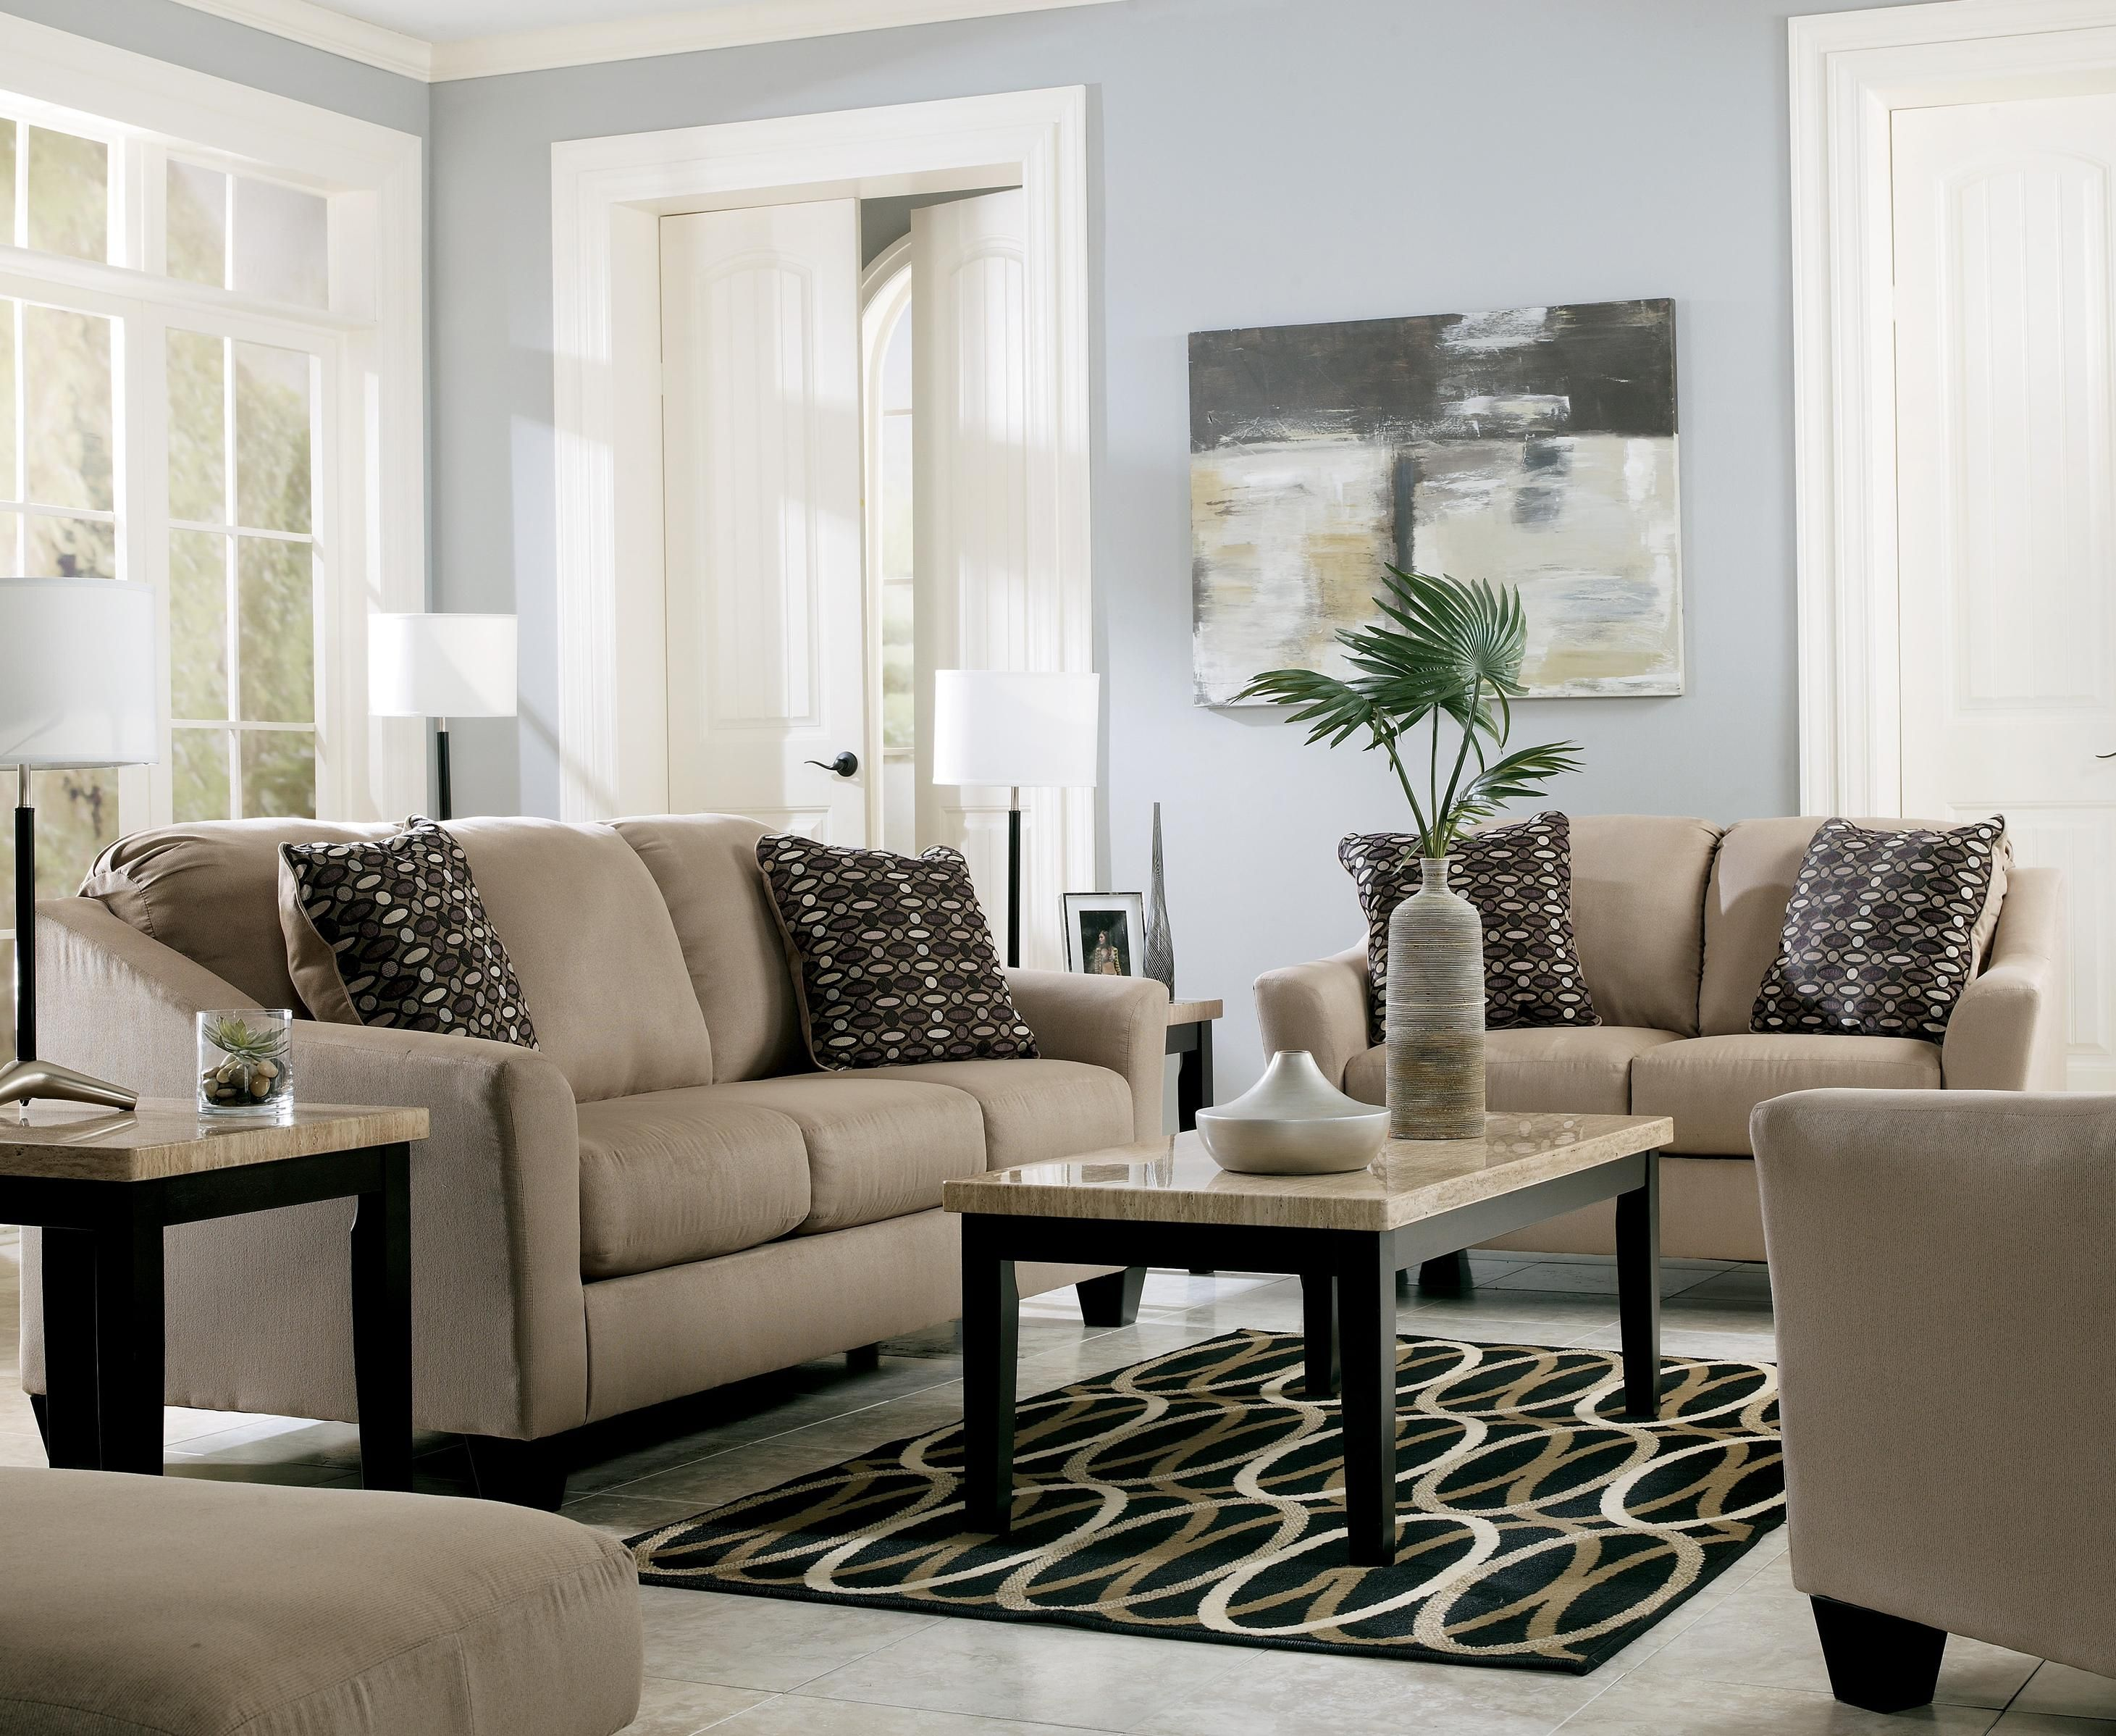 KyleClay Sofa And Loveseat Set Marjen Of Chicago Chicago - Marjen furniture